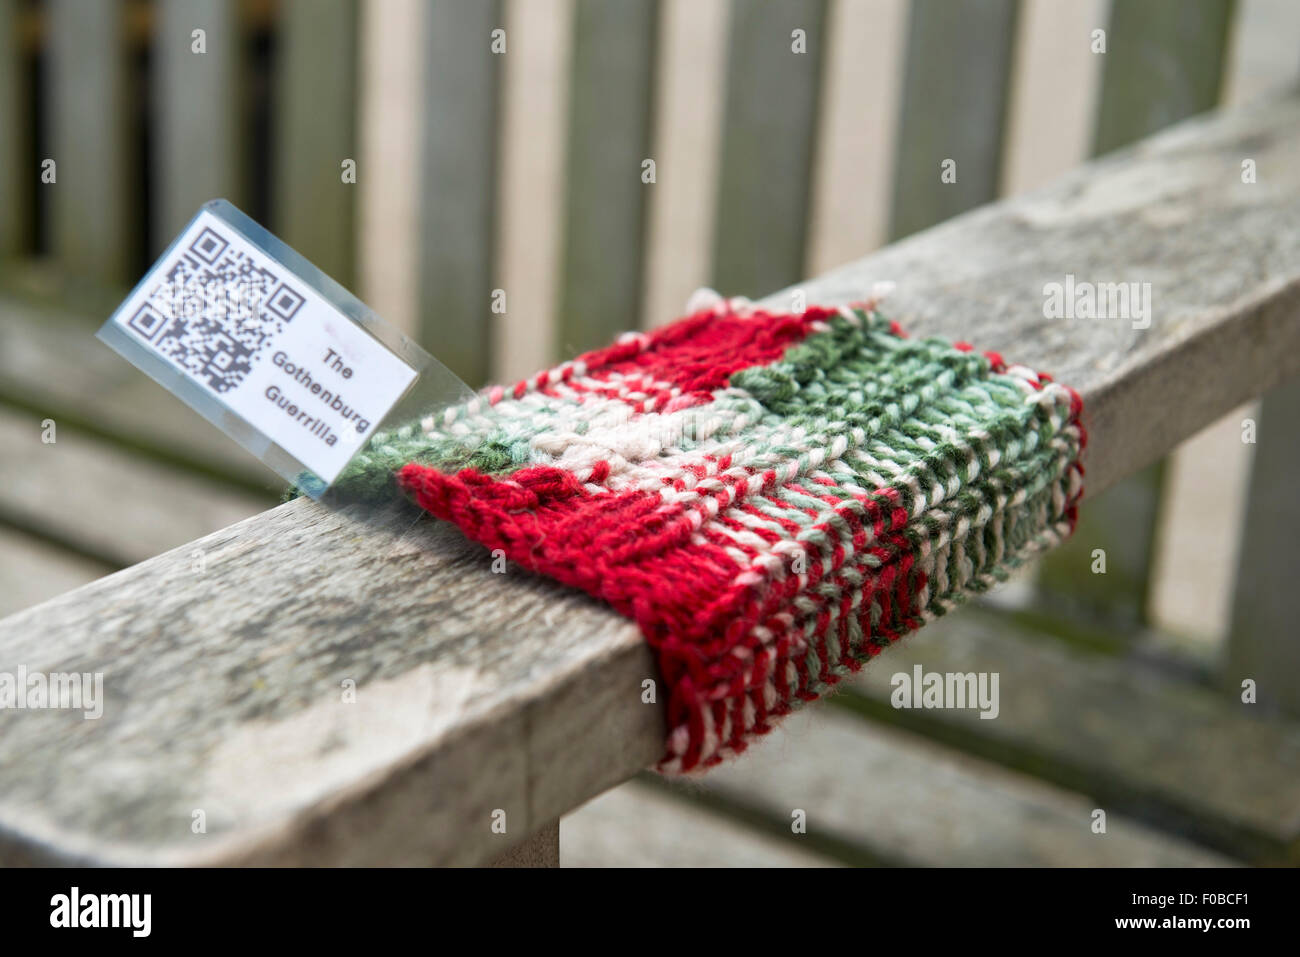 Guerilla Knitting street art on a bench in Burford Cotswolds Oxfordshire England UK Europe - Stock Image